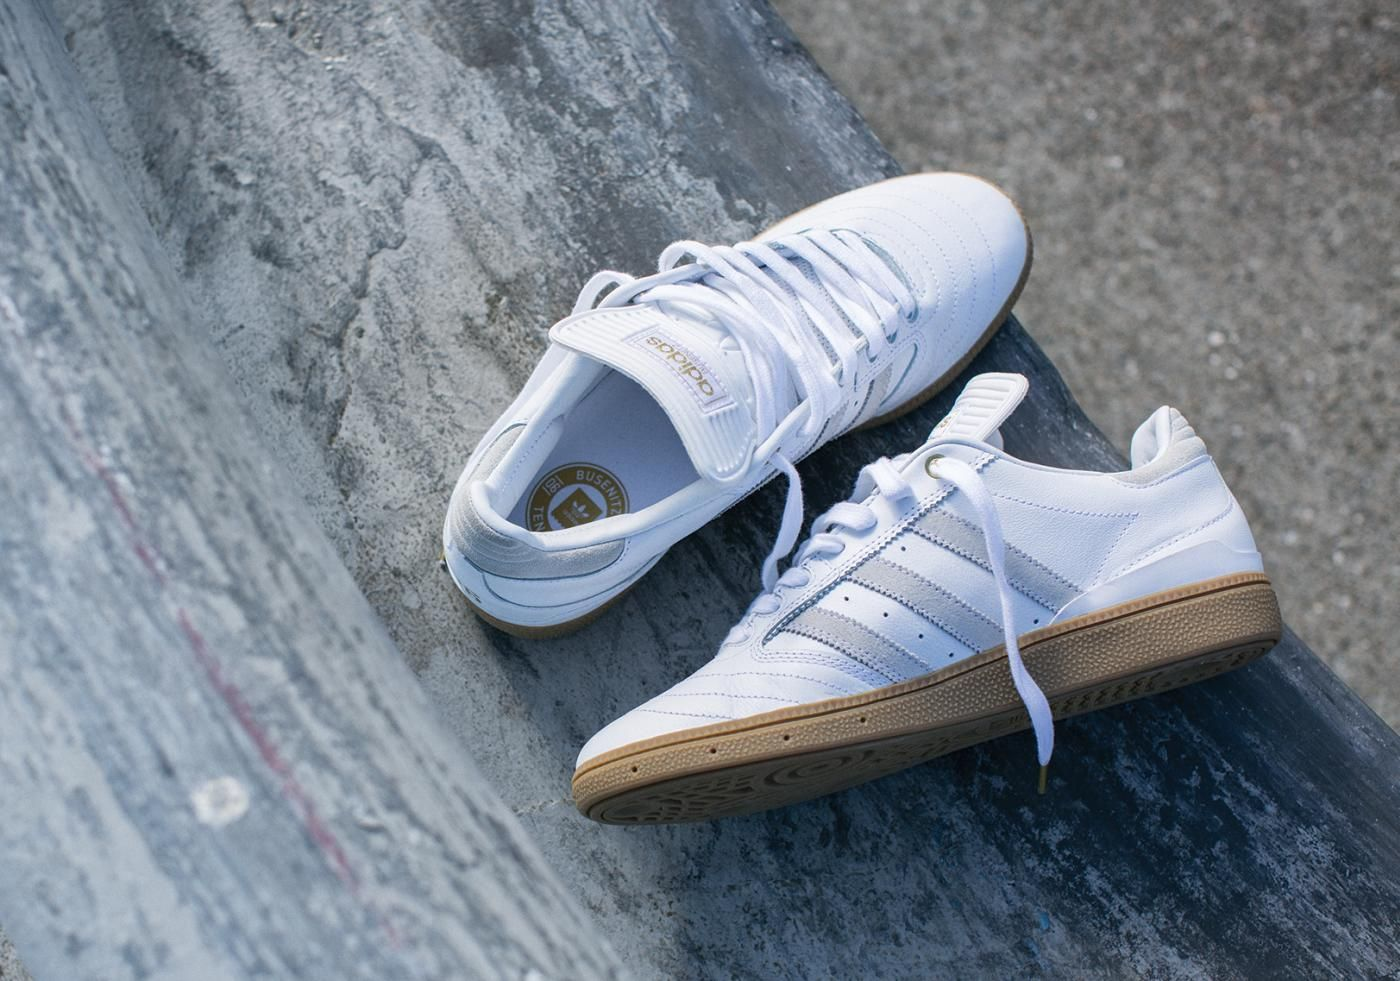 adidas Skateboarding's New Busenitz Pro Rounds Out